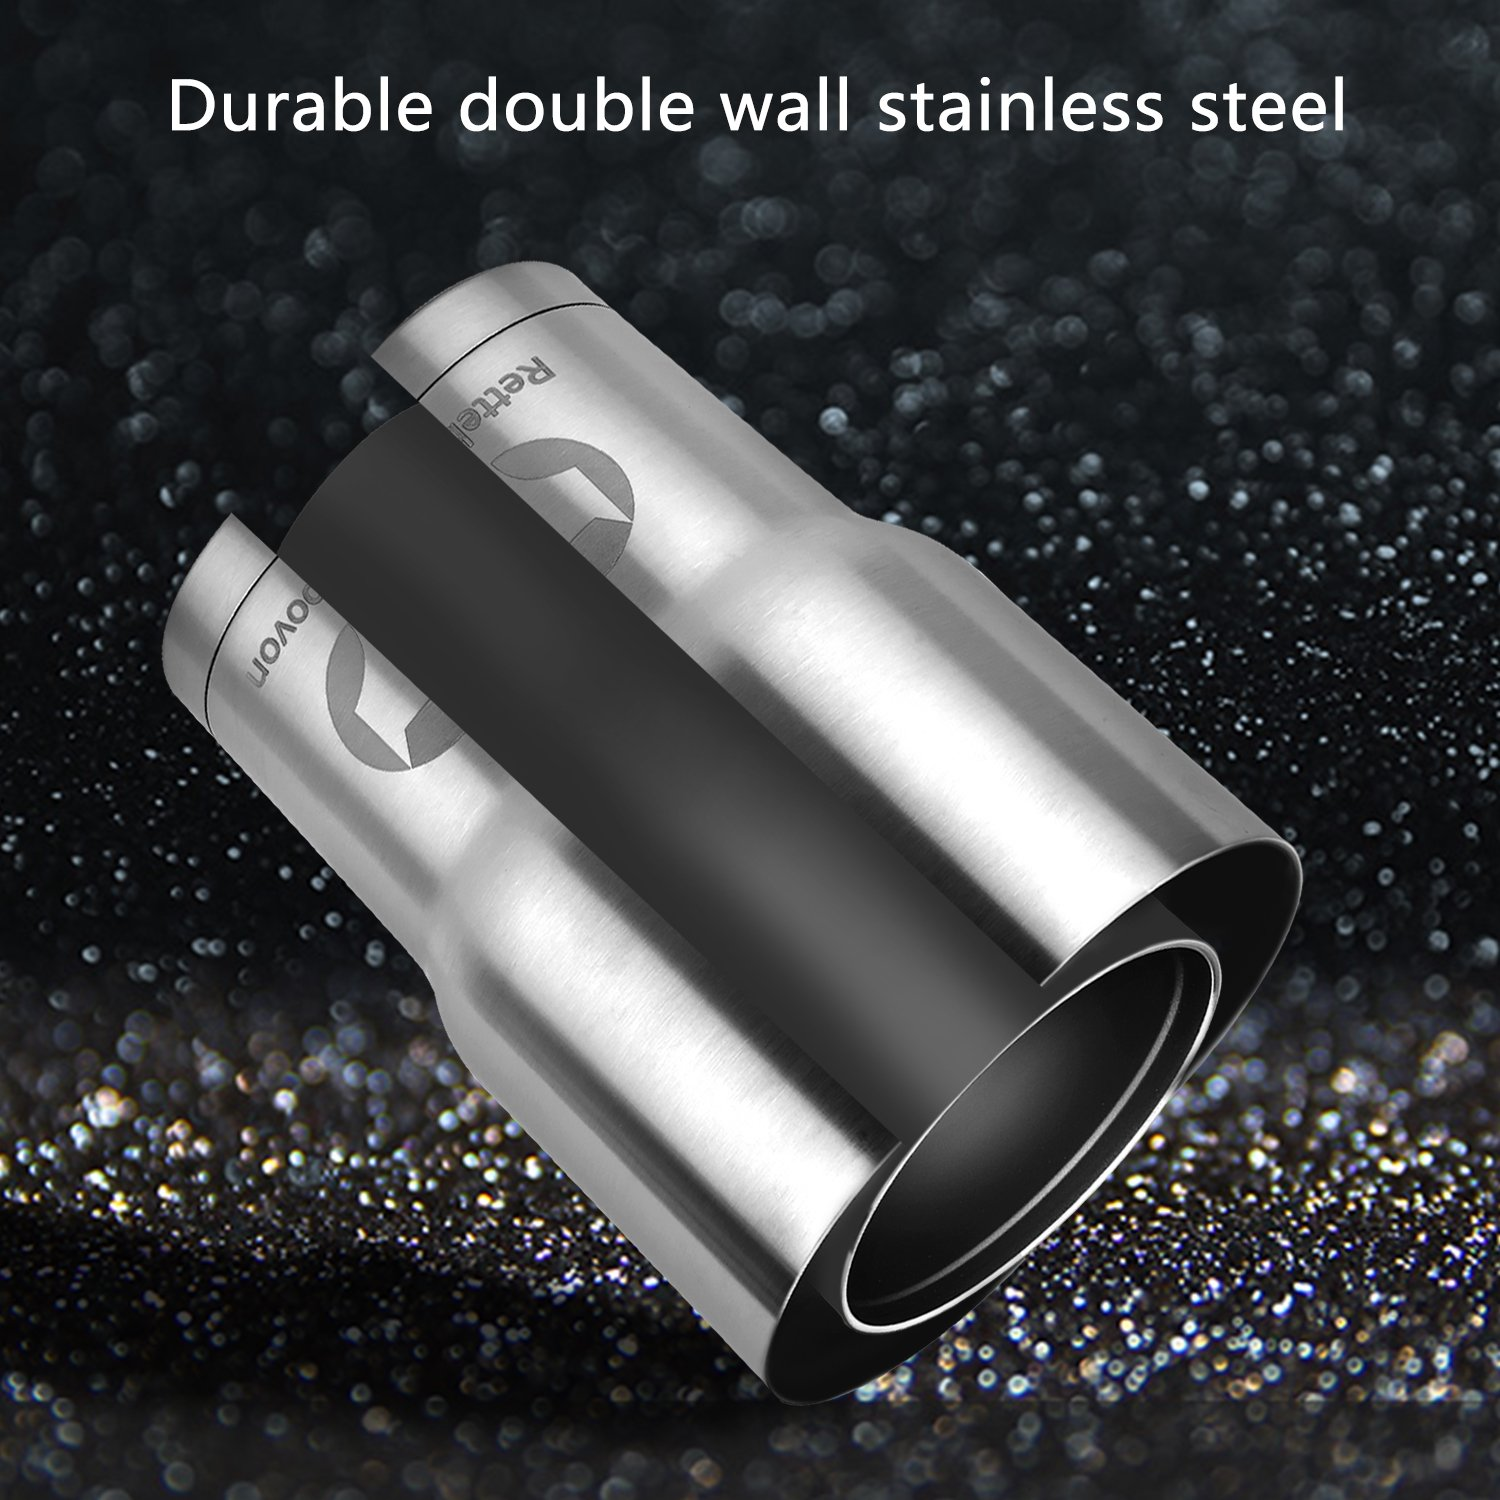 Rettebovon 30oz Stainless Steel Tumbler With Straw Lid and Handle For Coffee Cup Travel Mug Double Wall Stainless Steel Vacuum Insulated Water Bottle 7PCS Set For Keeping Ice-Cold And Hot by Rettebovon (Image #3)